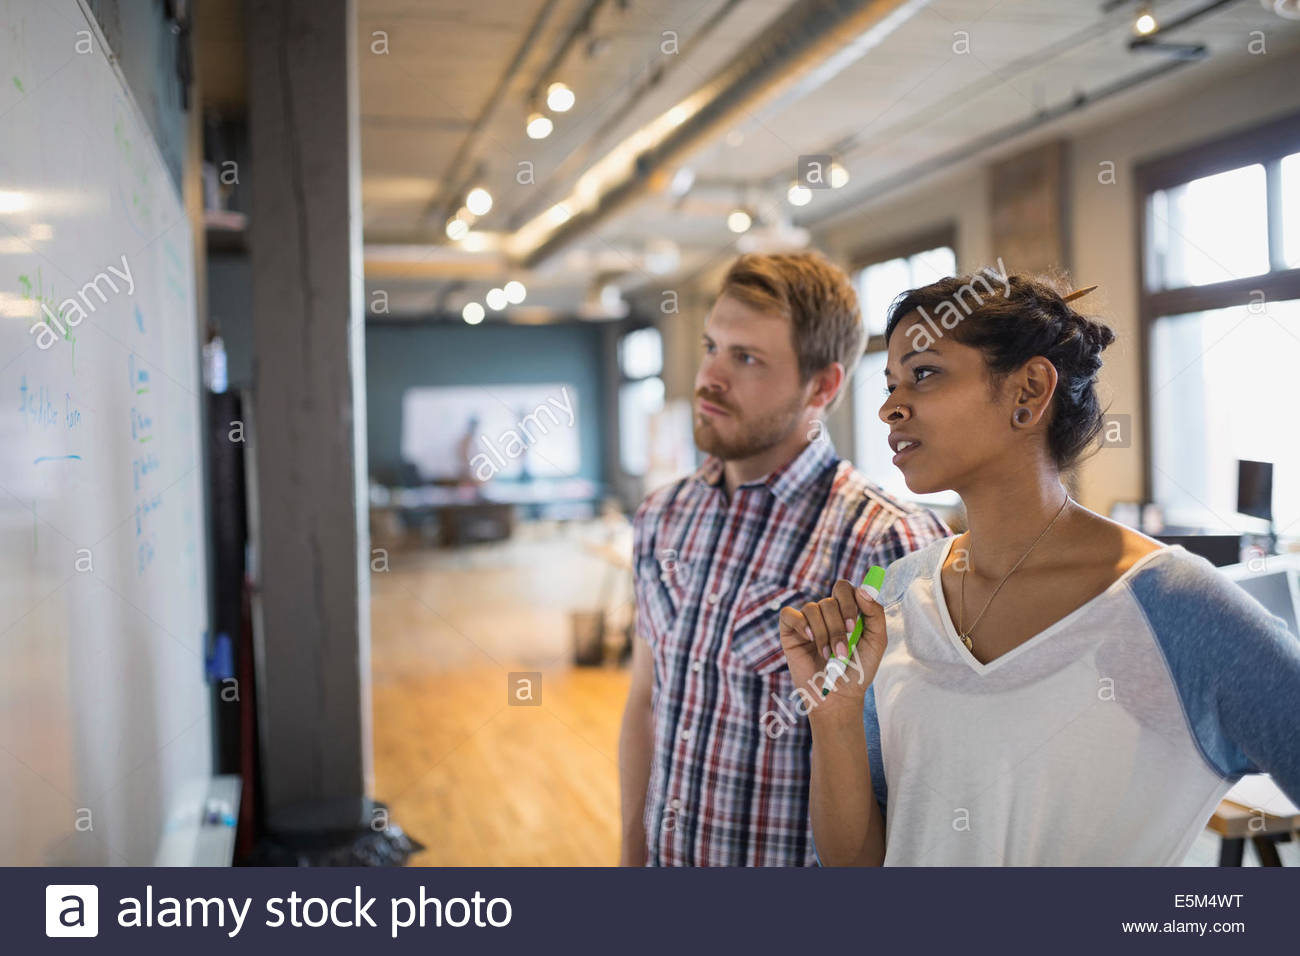 Business people talking at whiteboard in office - Stock Image